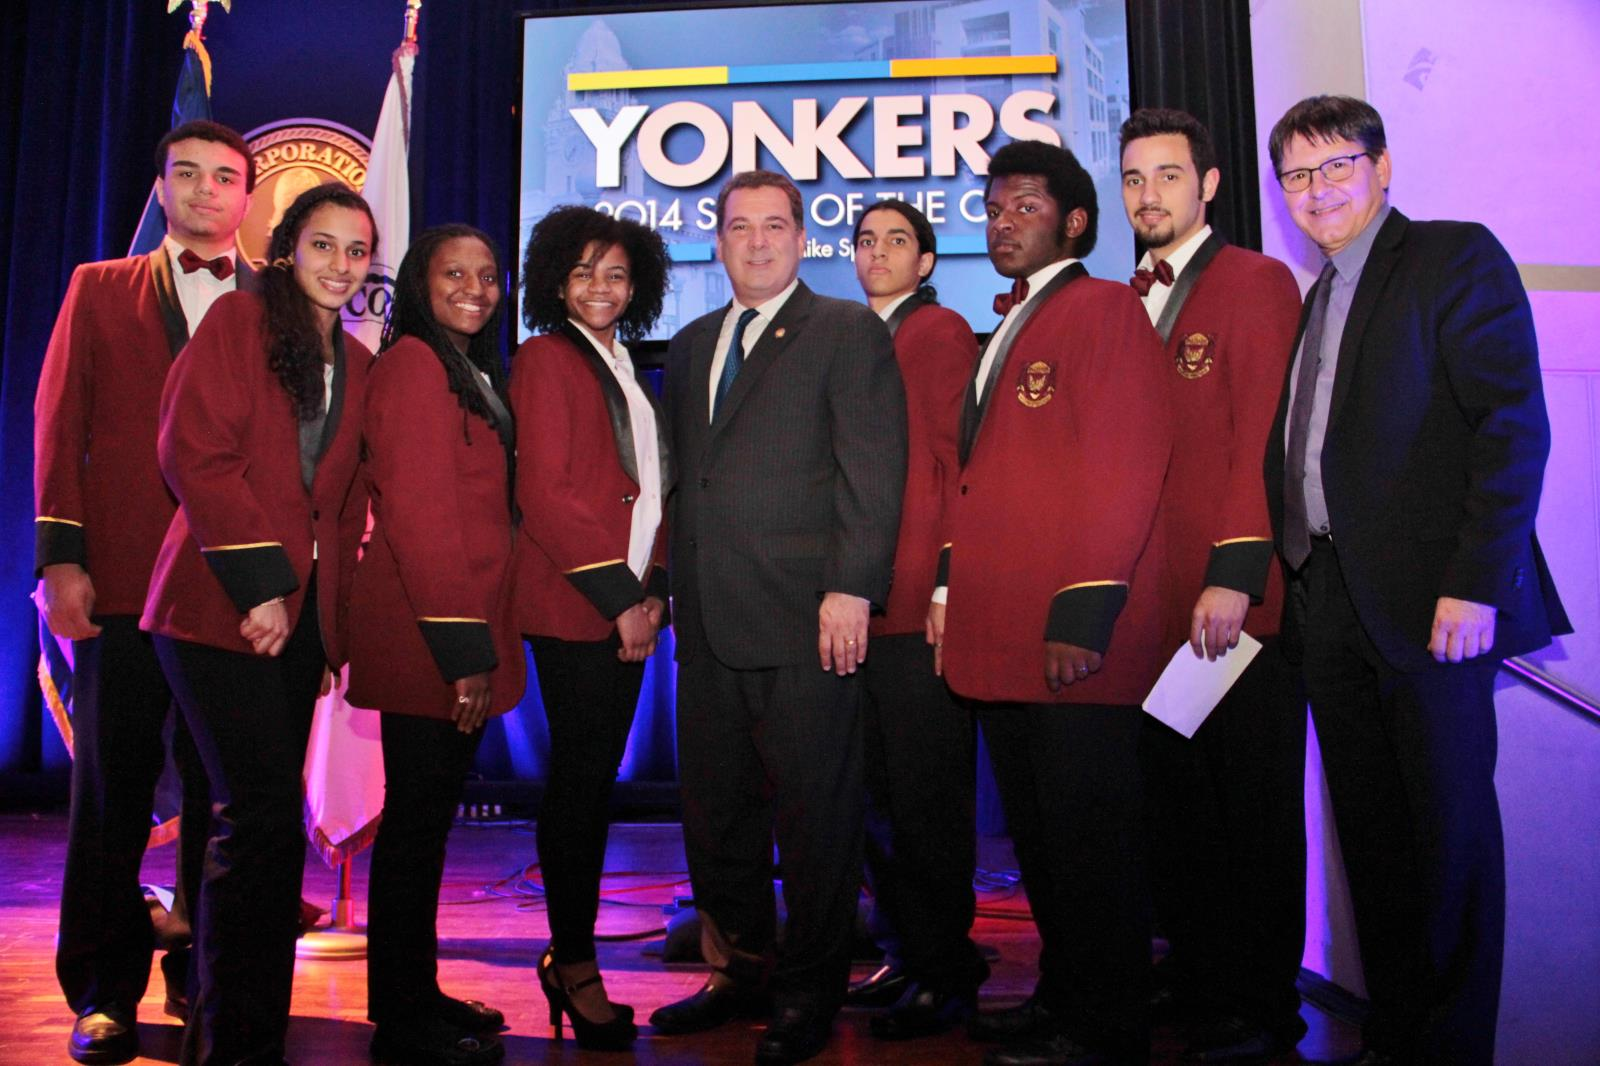 Mayor Mike Spano and Students from Palisade Preparatory